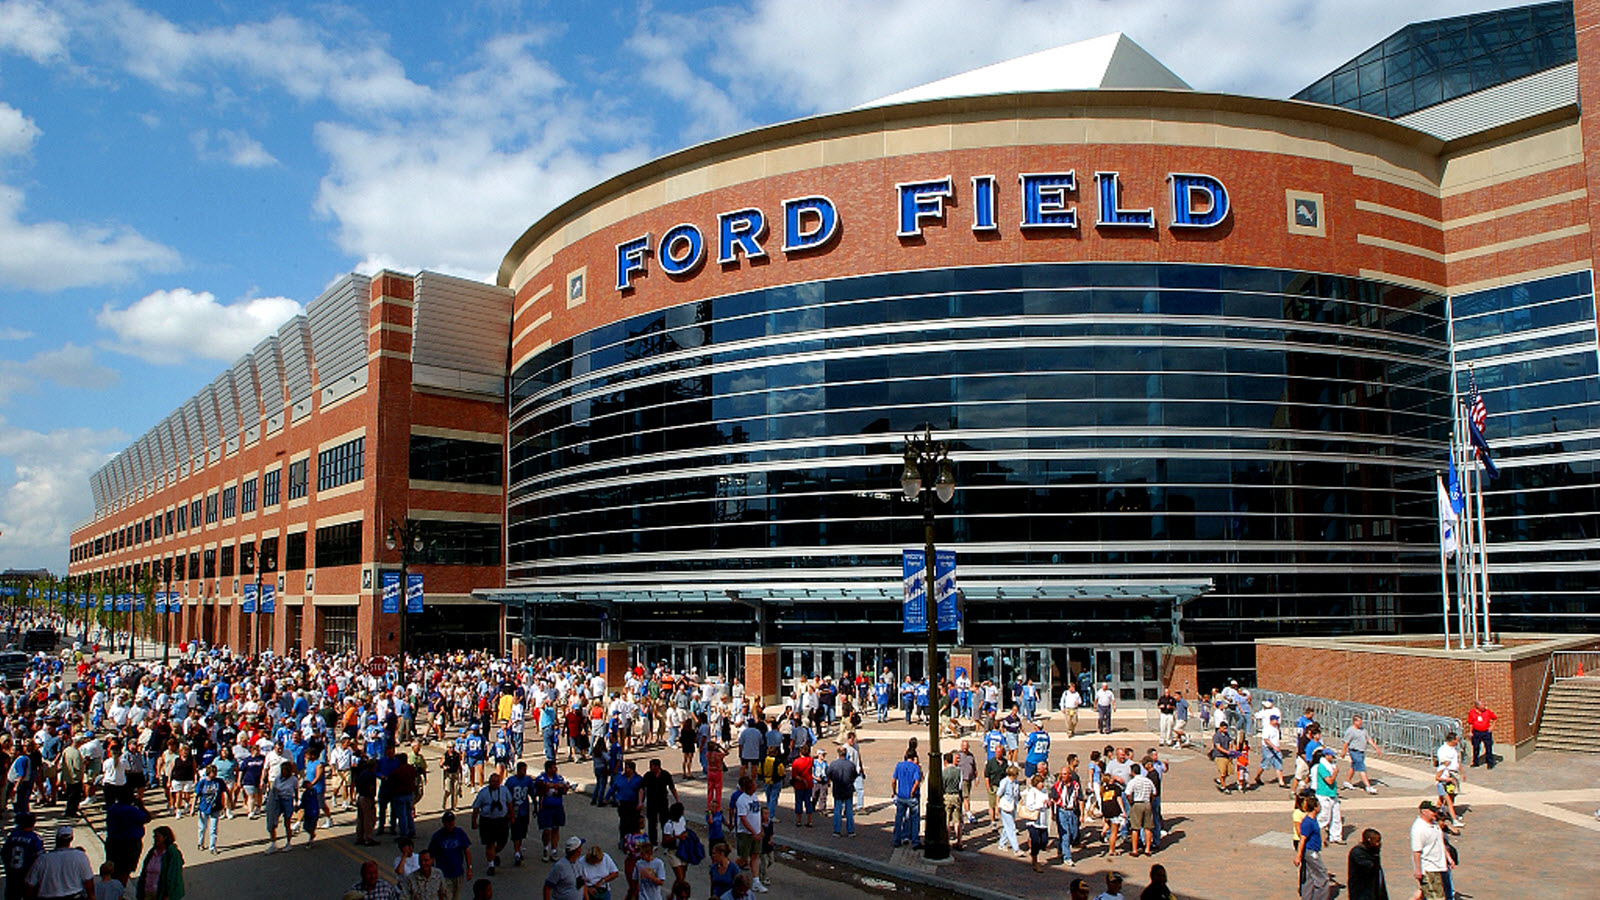 Things to Do in Detroit - Ford Field